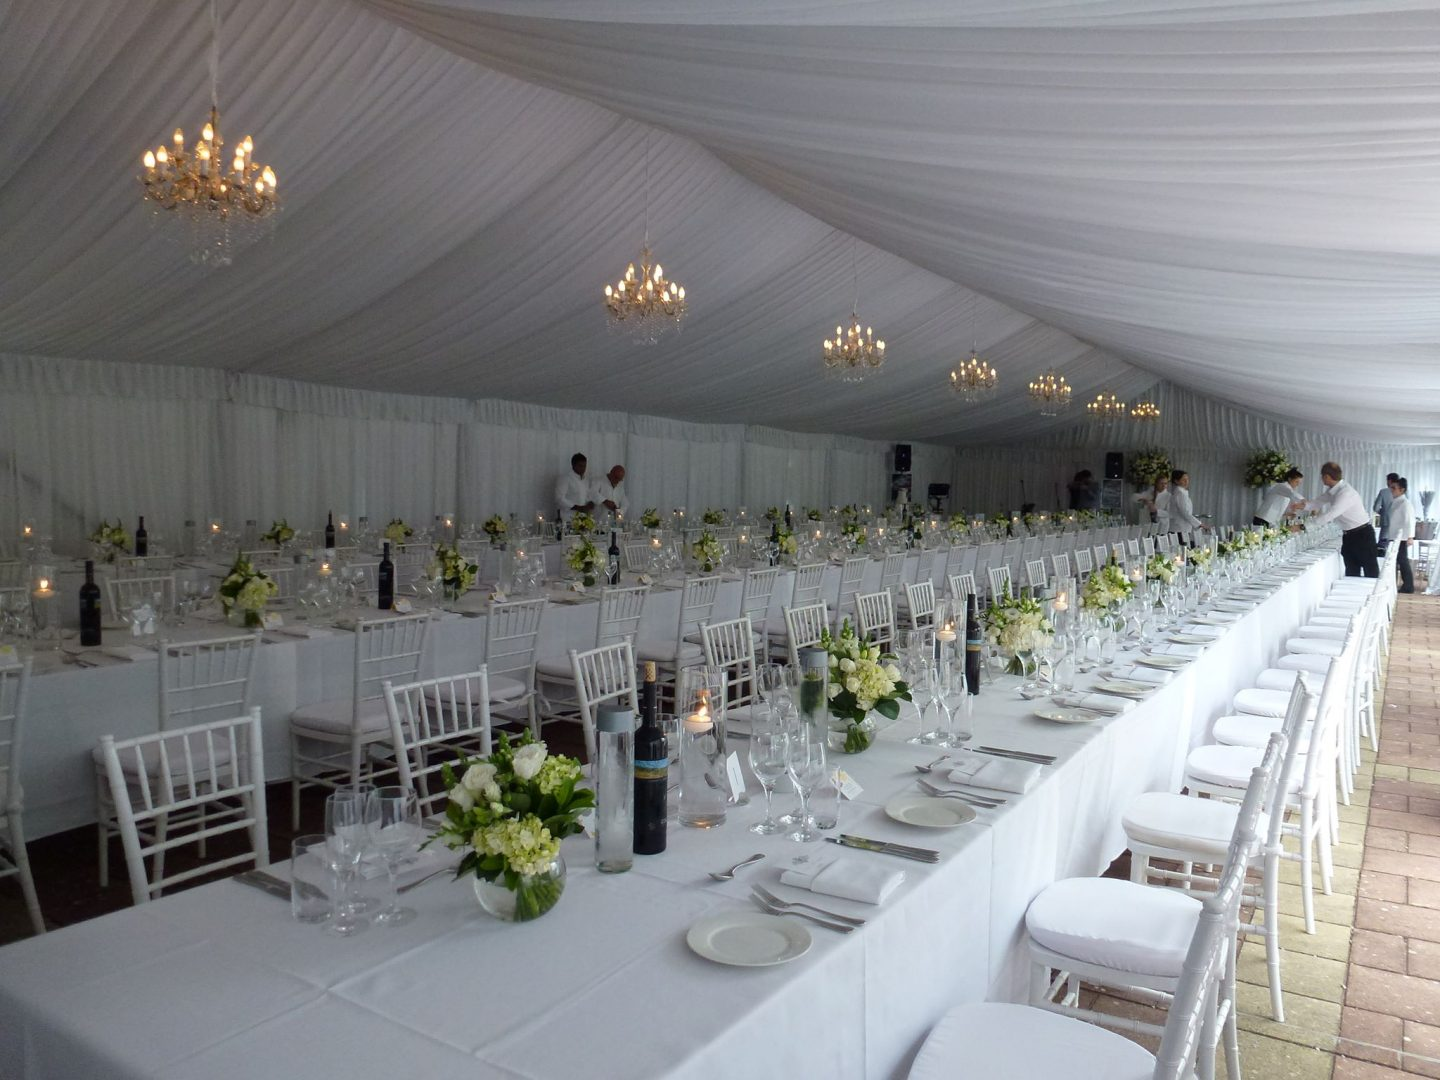 ten-by-twenty-four-meter-pavilion-fully-lined-with-white-draping-and-wedding-reception-set-up